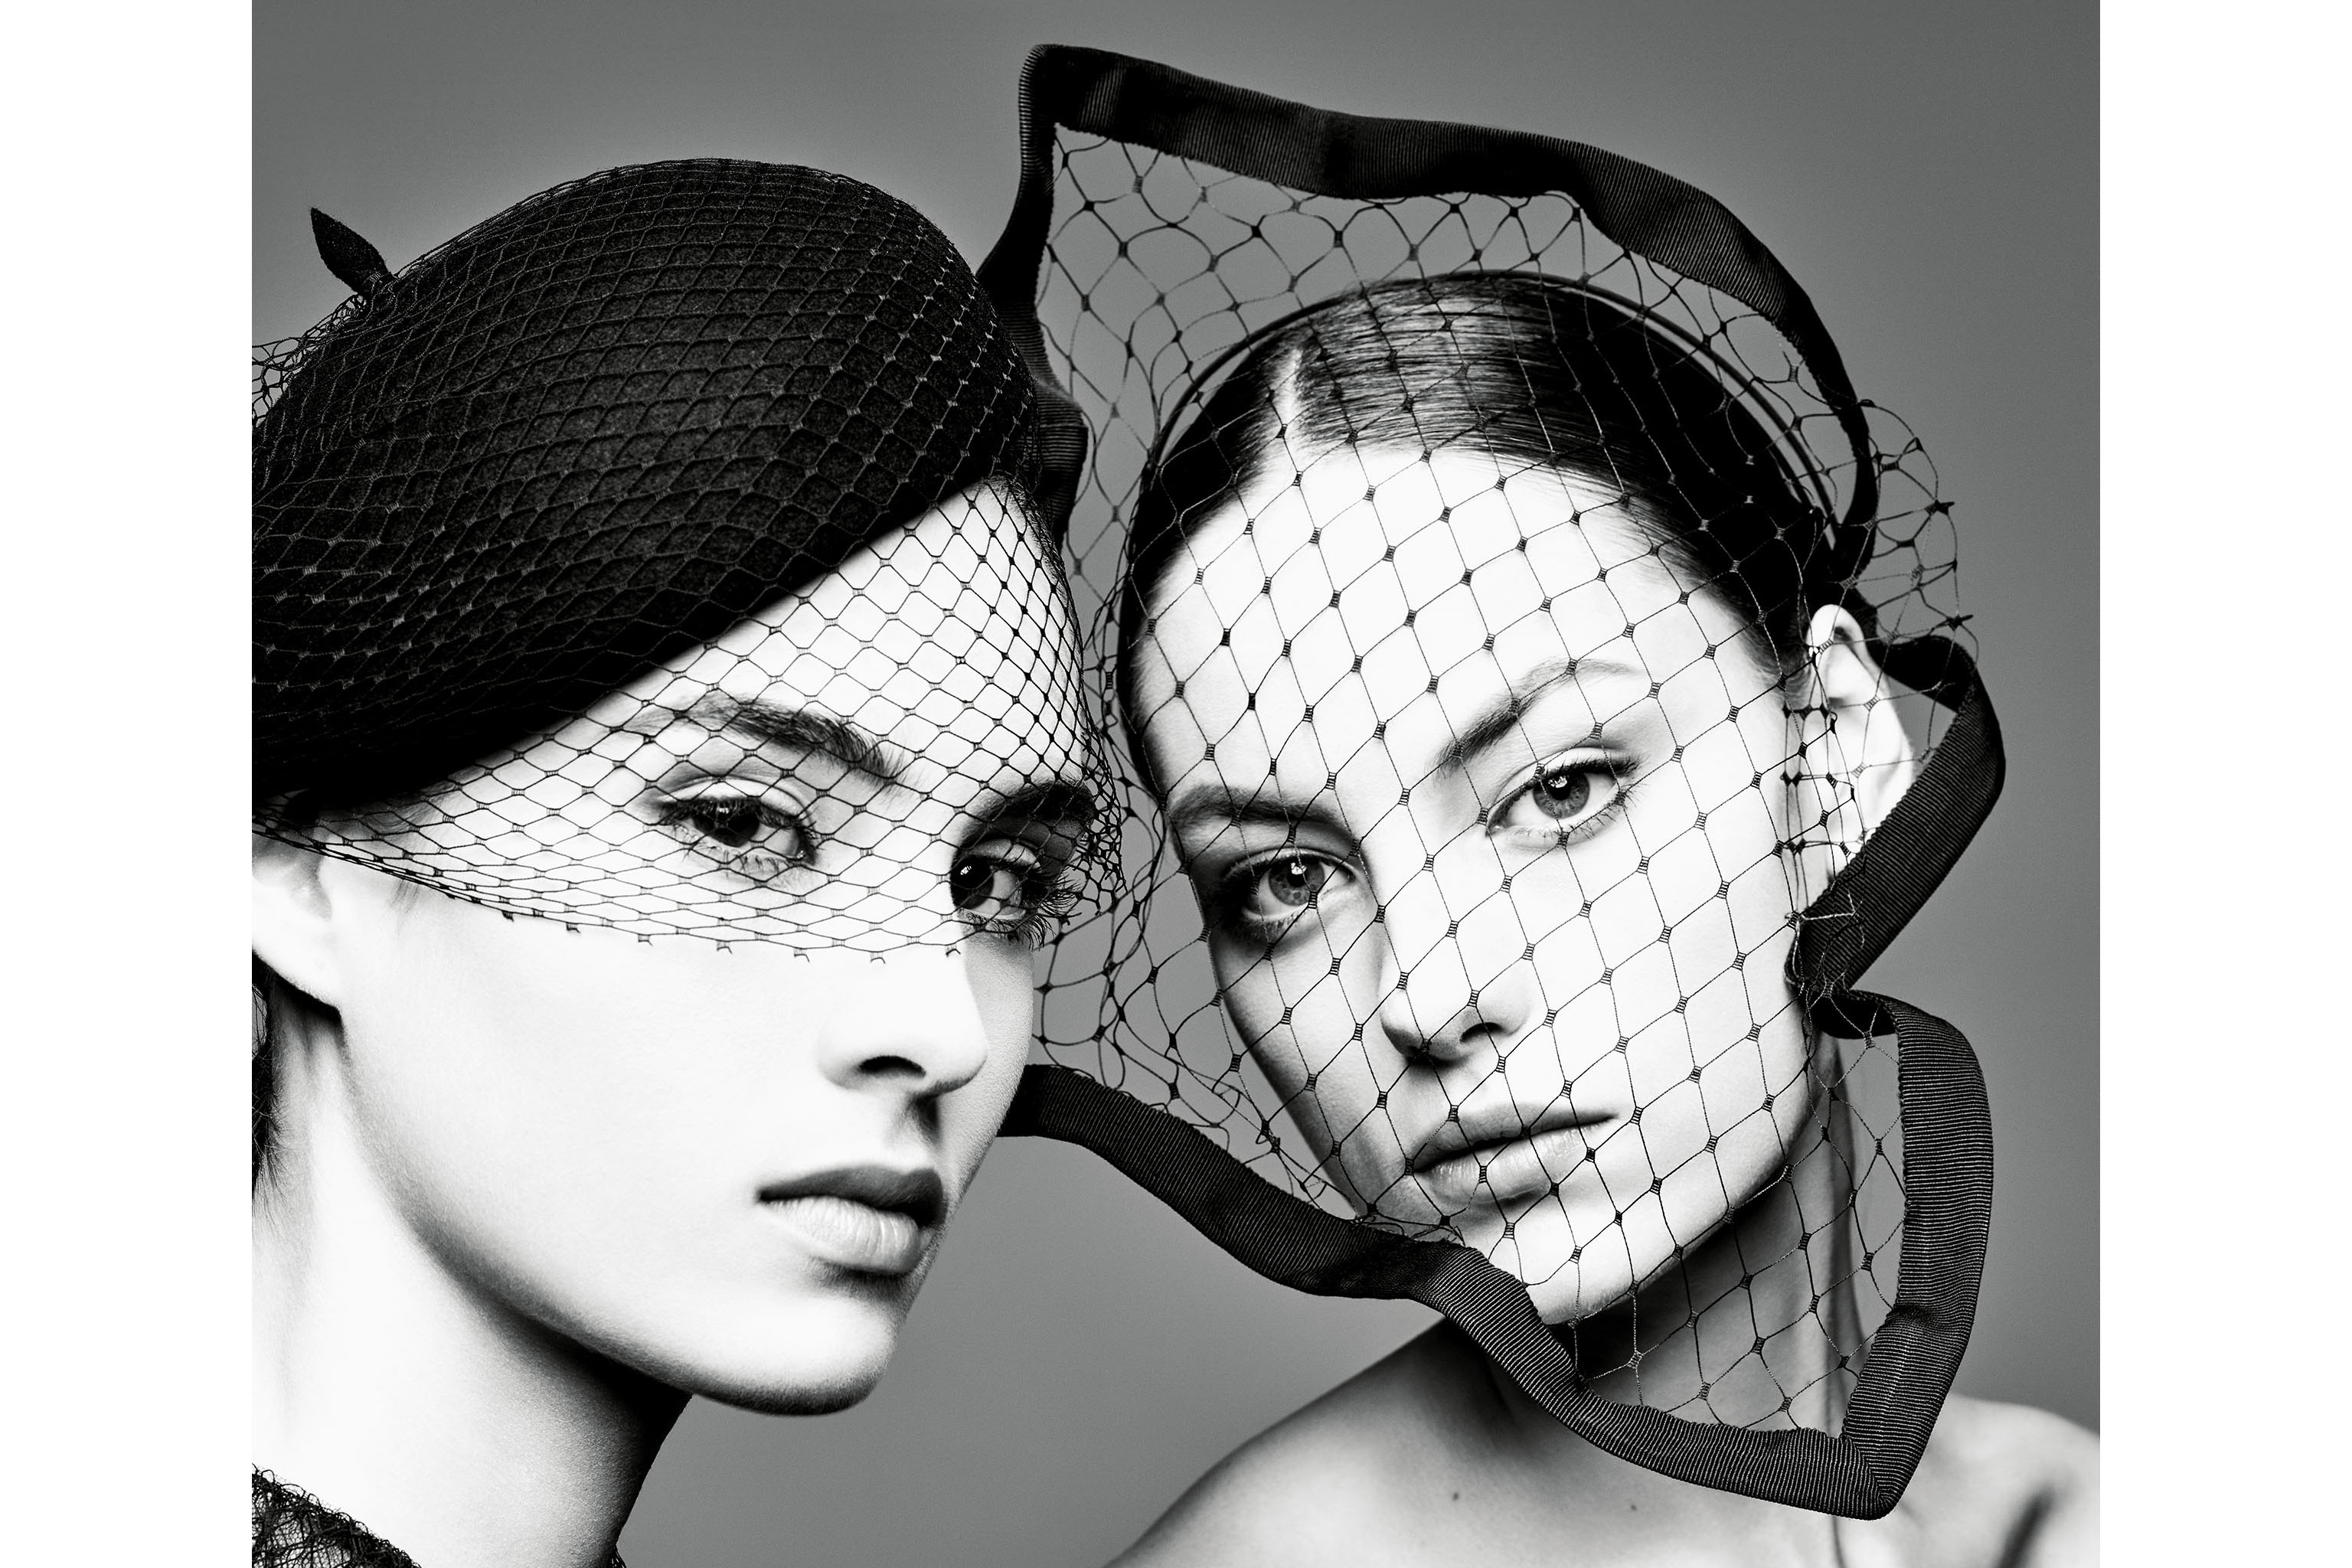 """Veiled beret, Numéro 157 design, Christian Dior fall–winter 2019 haute couture collection; """"handkerchief"""" veil edged with grosgrain, Insomnia design, spring–summer 2018 haute couture collection by Maria Grazia Chiuri."""